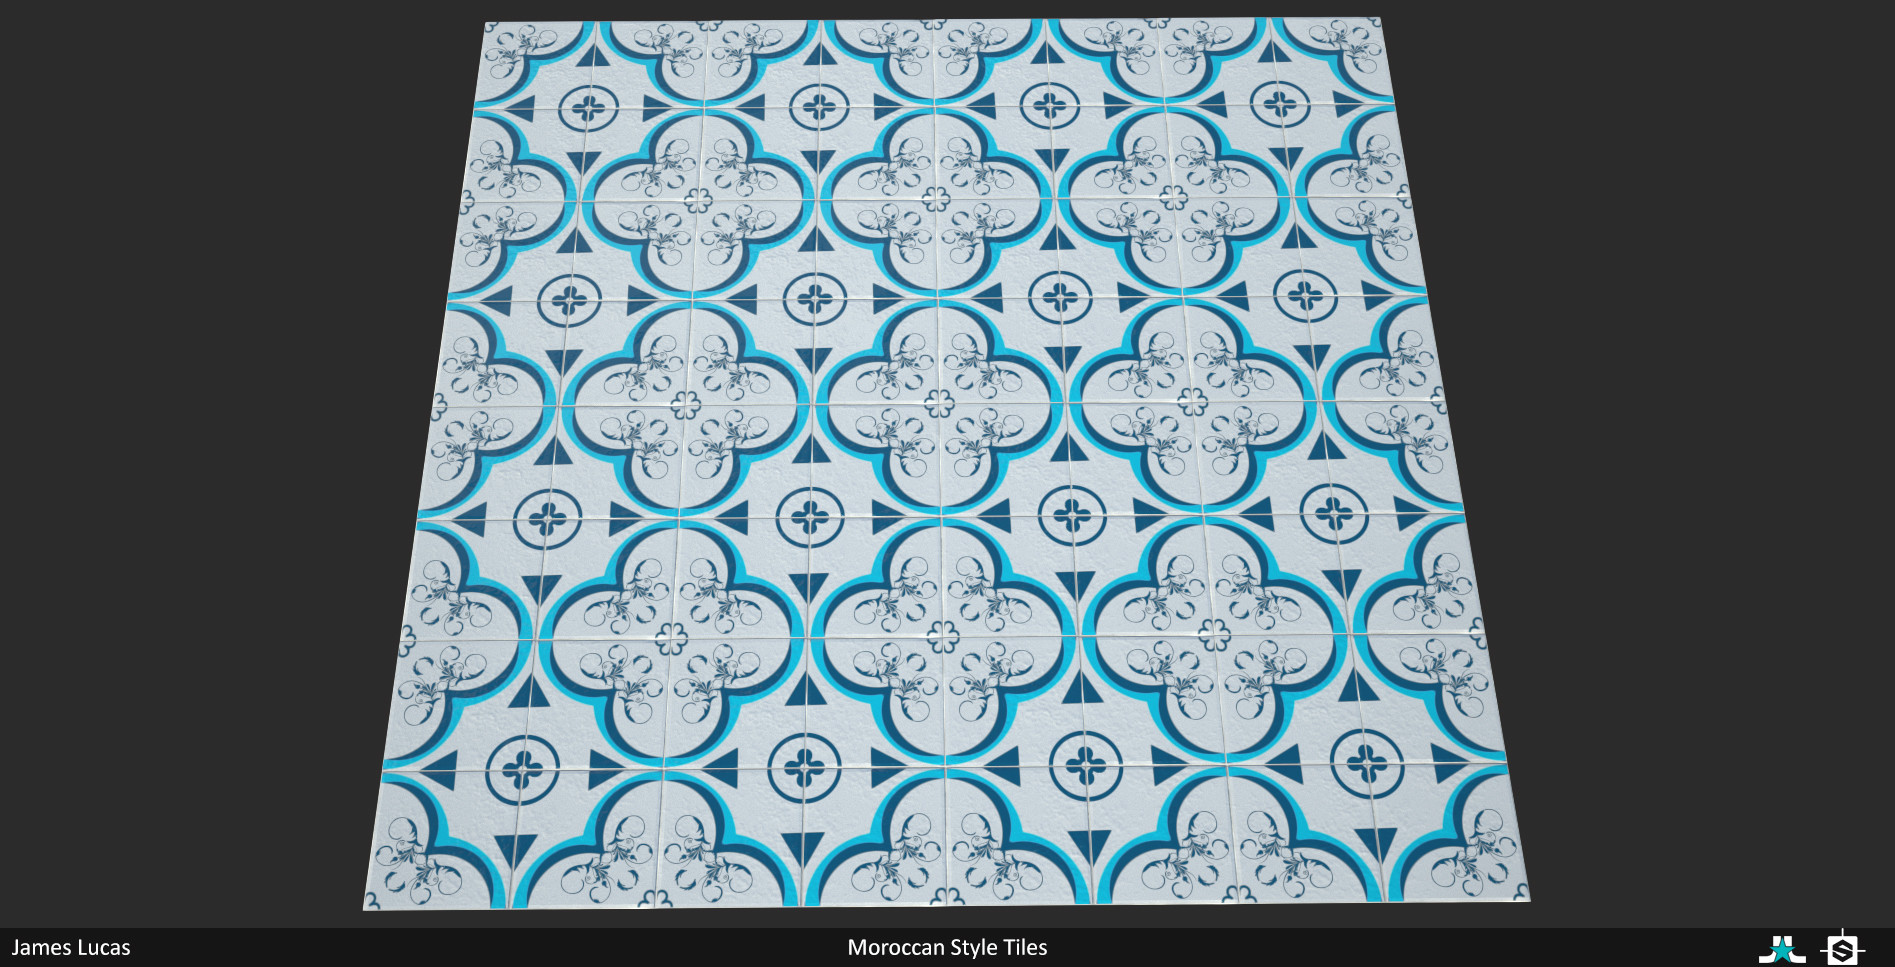 James lucas moroccanstyletiles3